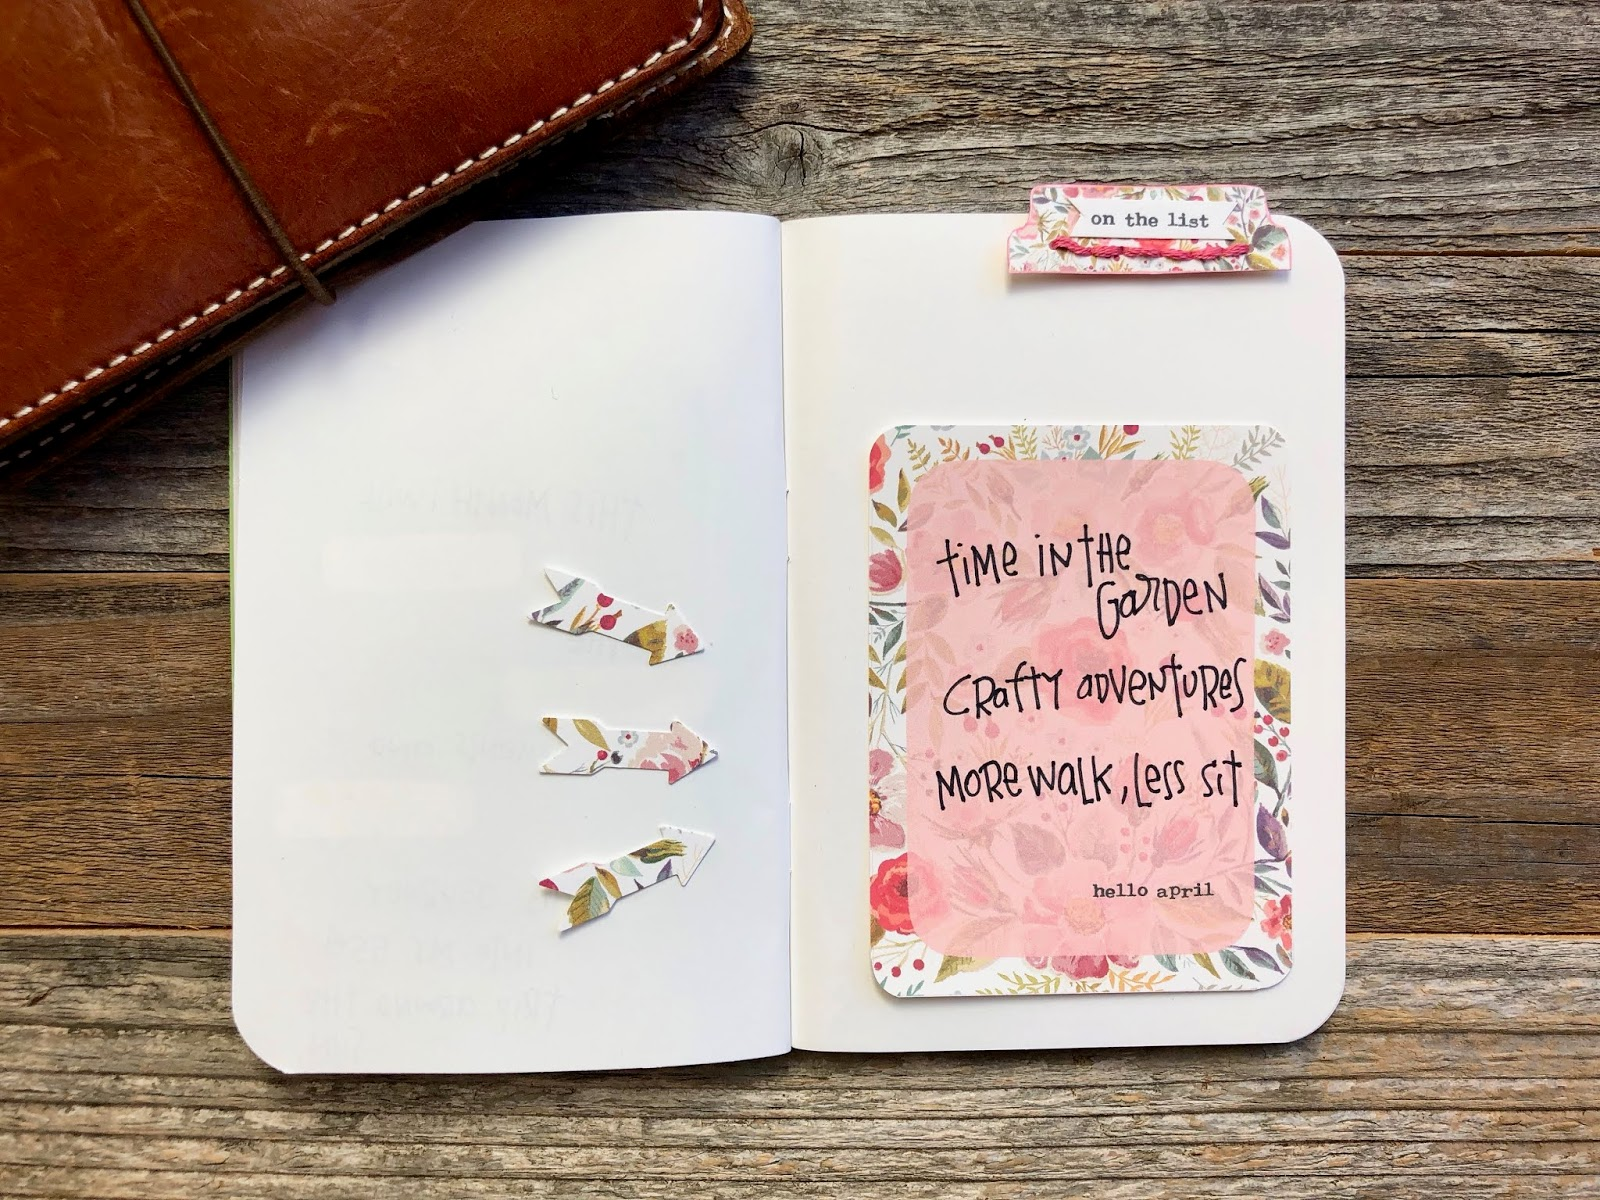 #hello april #hello #on the list #instant download #free download #journaling card #project card